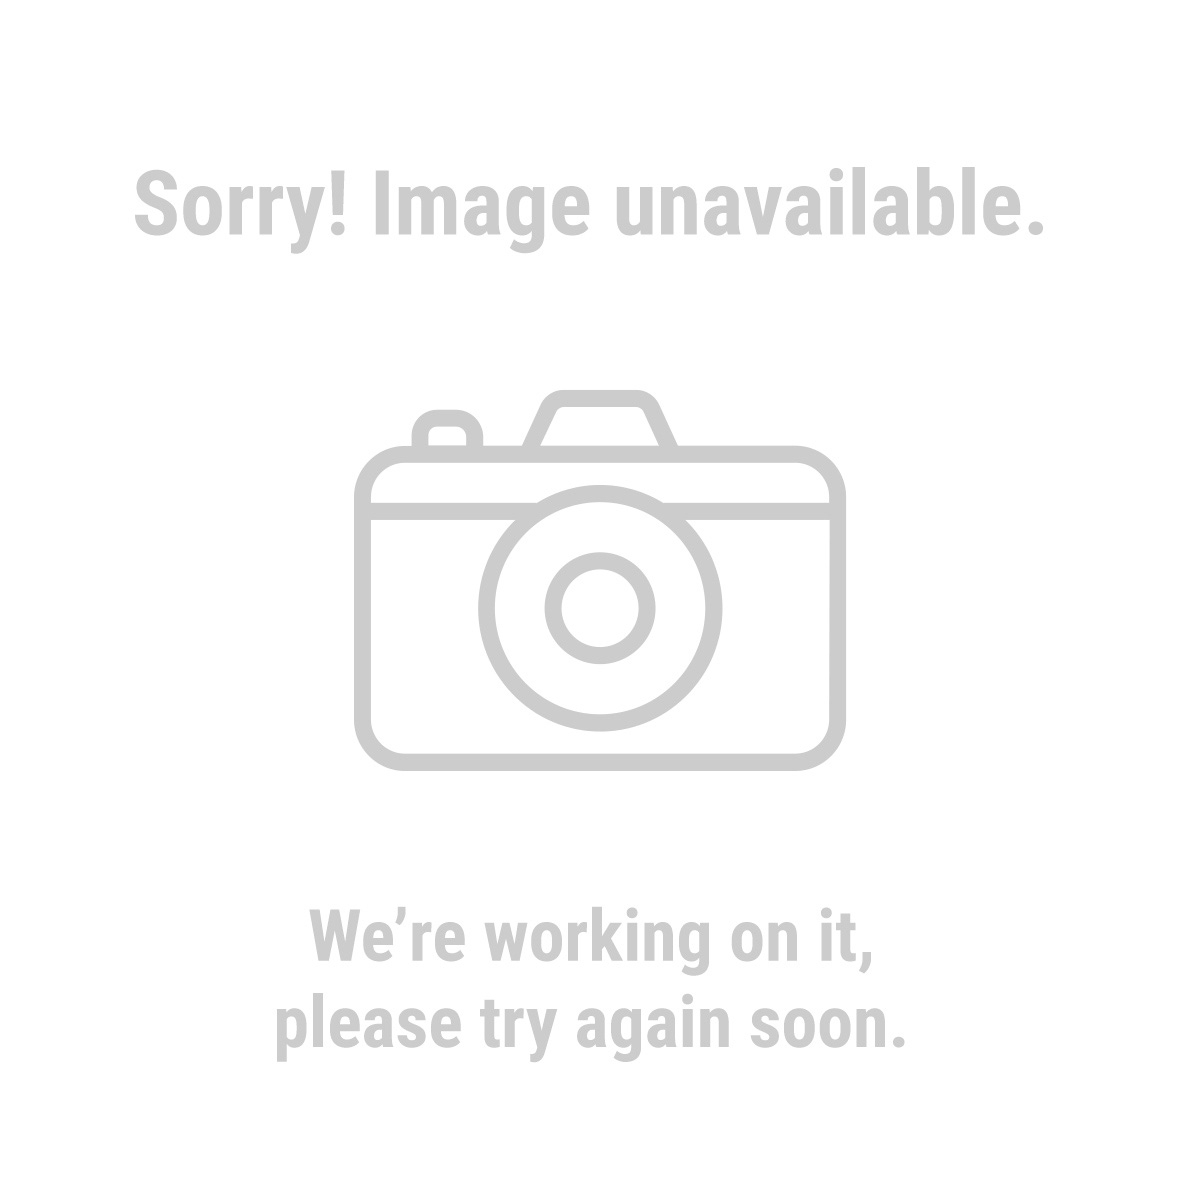 Western Safety 33984 Deluxe Wrist Support